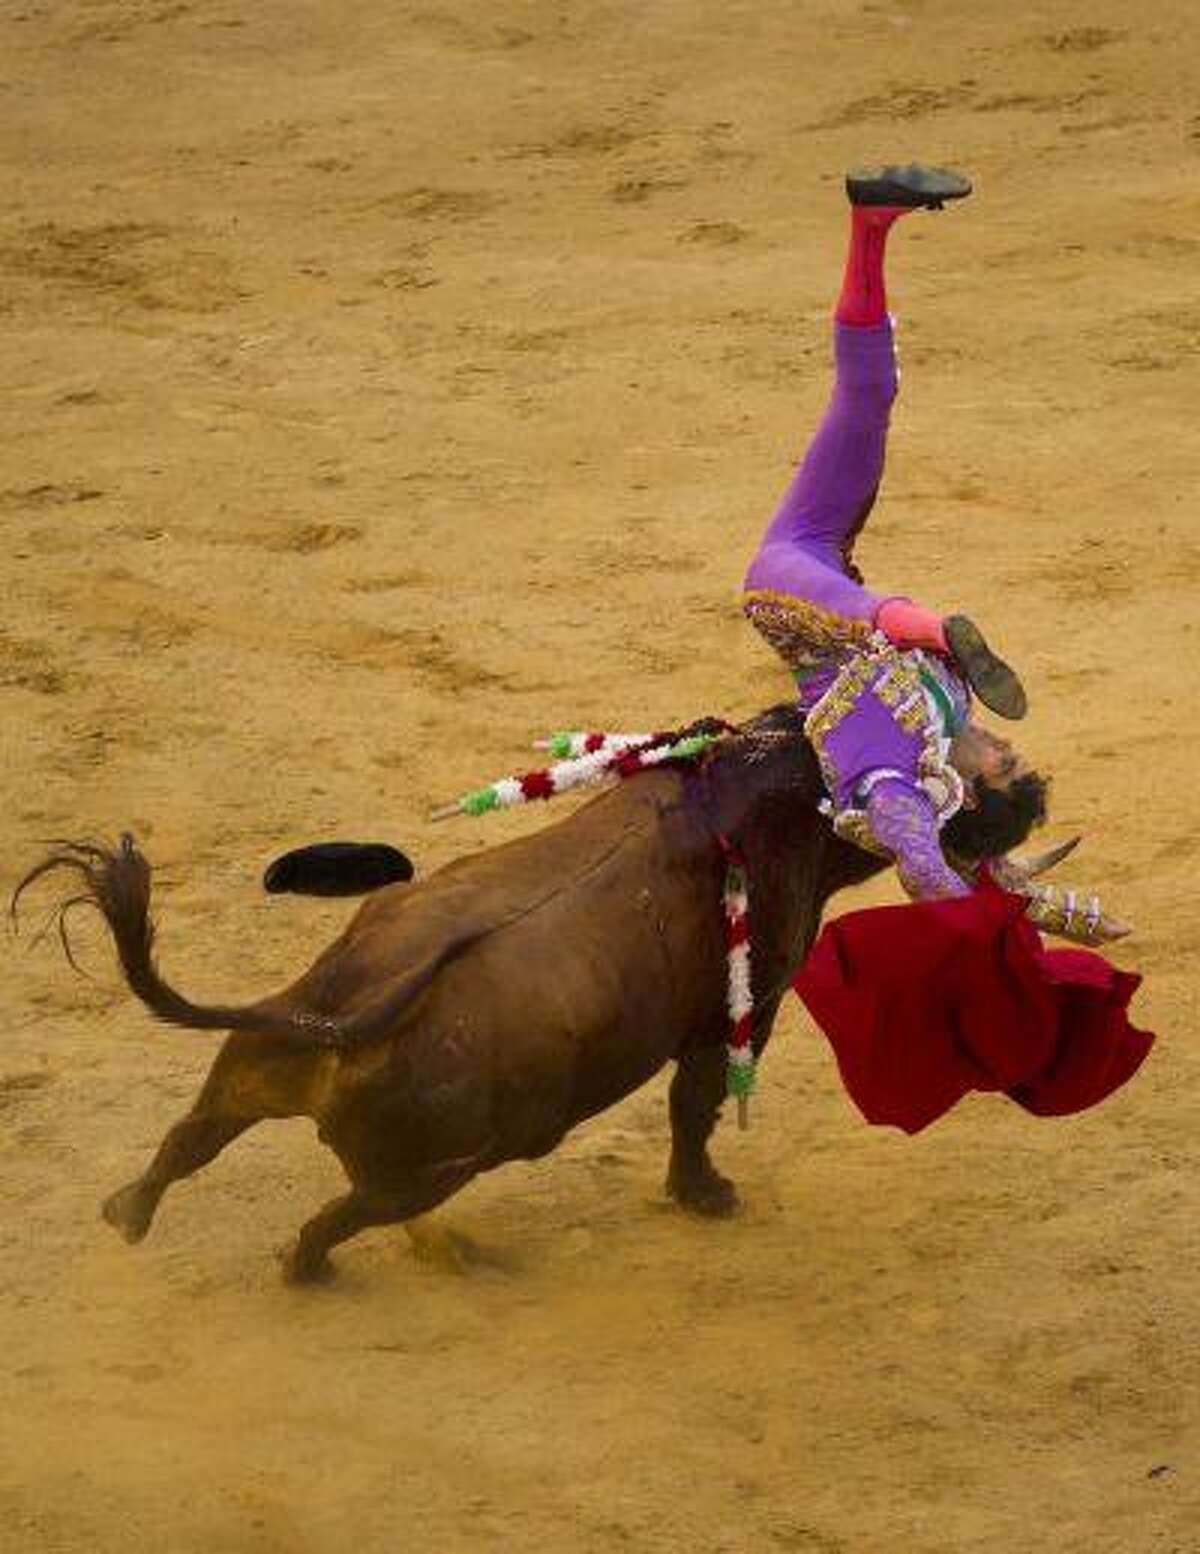 Spain's bullfighter Jose Tomas flips up and down after being pushed by an El Pilar ranch fighting bull during a bullfight, in Valencia, Spain, Saturday, July 23, 2011. Tomas, one of Spain's top matadors known for a daring bullfighting style, came back to the bullring after a year recovering from a goring in Mexico that almost cost him his life.(AP Photo/Daniel Ochoa de Olza)